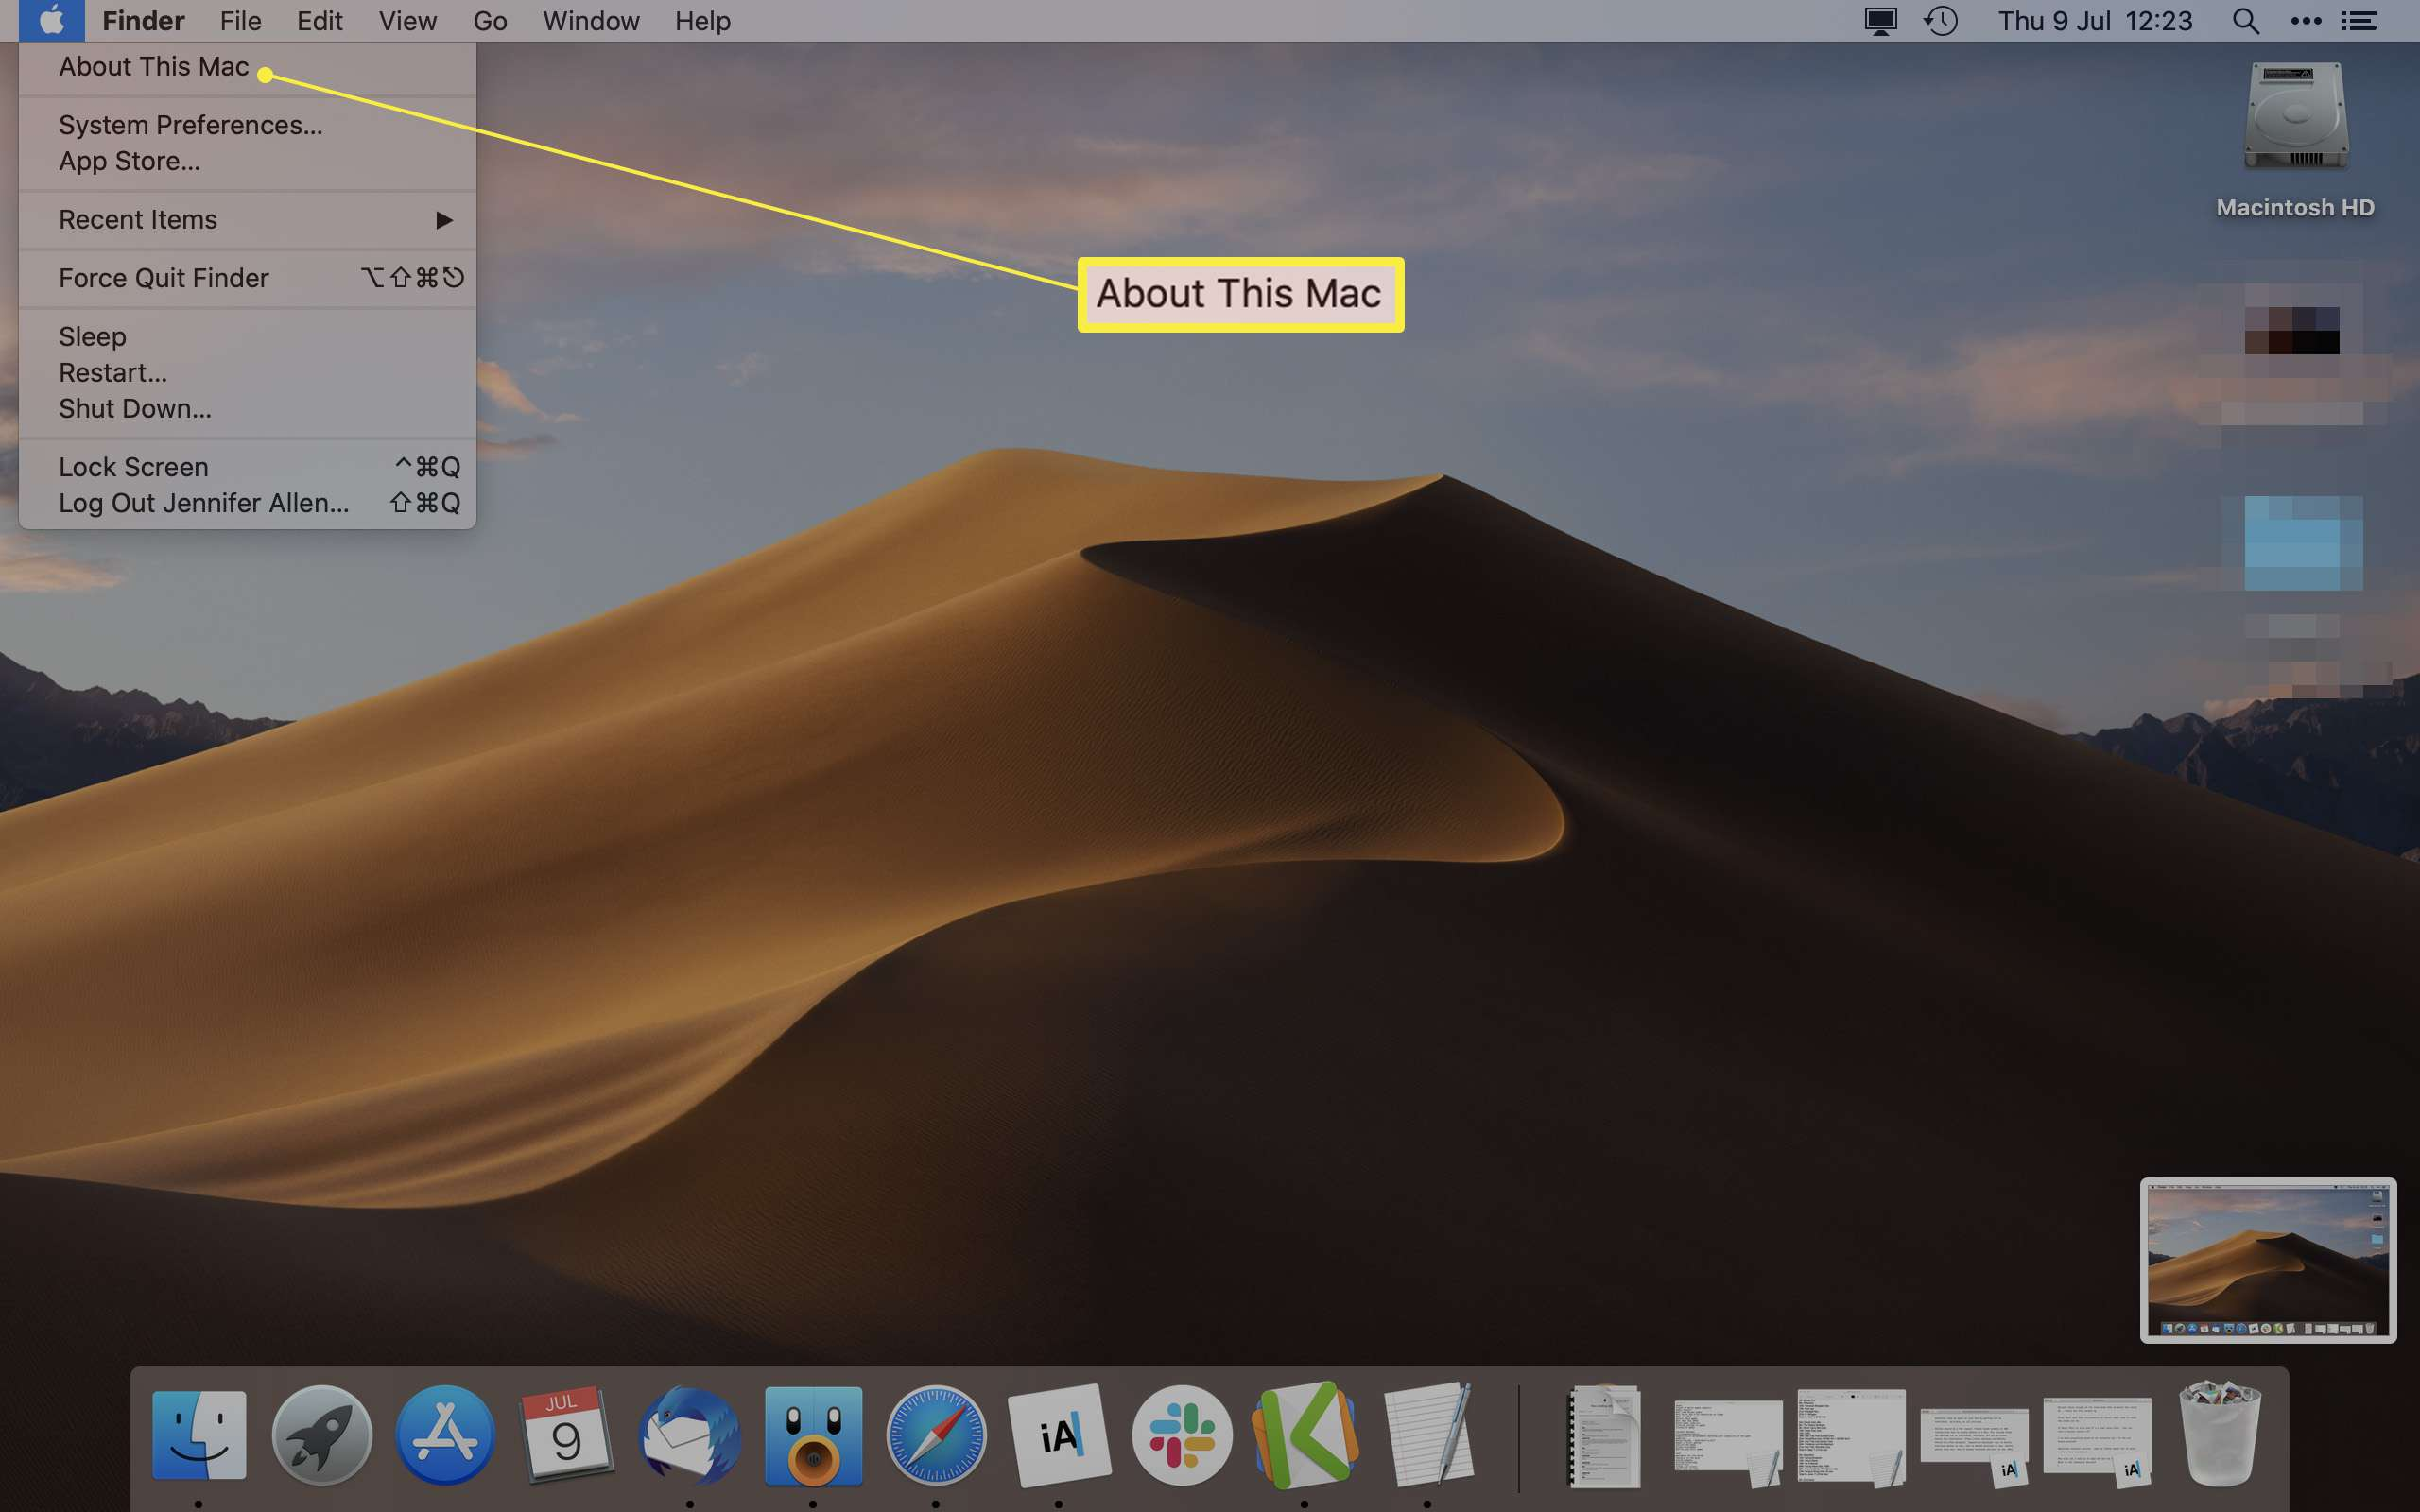 MacOS desktop screen with About This Mac highlighted